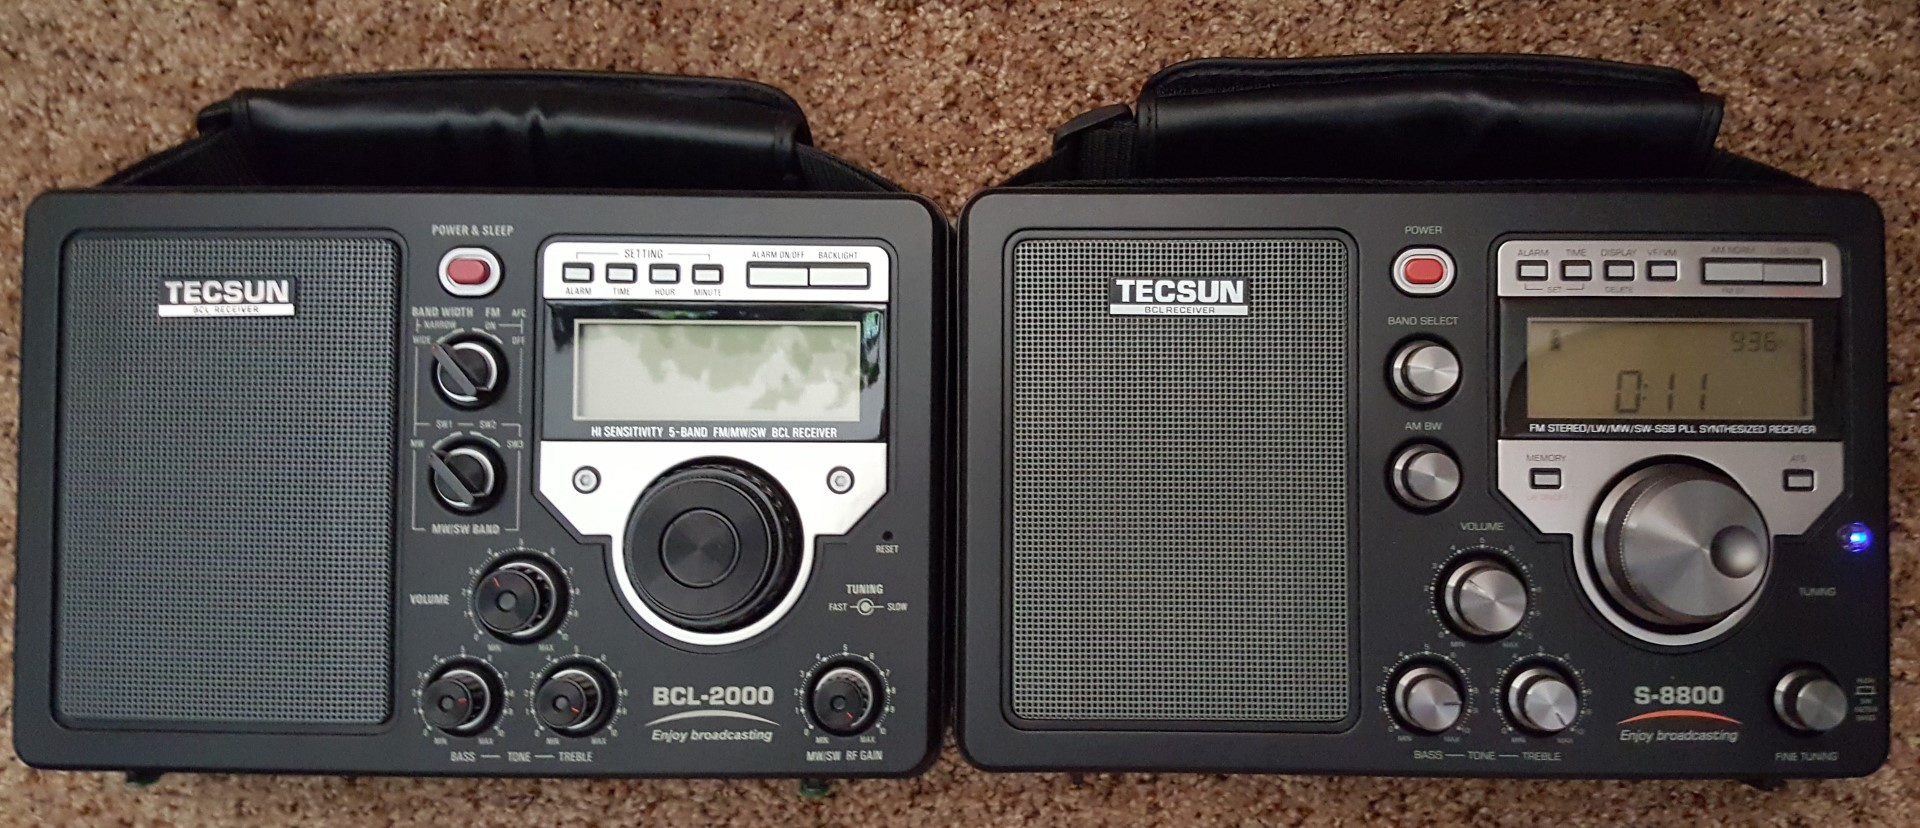 Tecsun S 8800 Am Lw Sw Fm Field Radio With Remote Radiojayallen Indicator Circuit Left Bcl 2000 Circa 2004 Right Similar On The Outside Inside A Totally Re Designed Superior